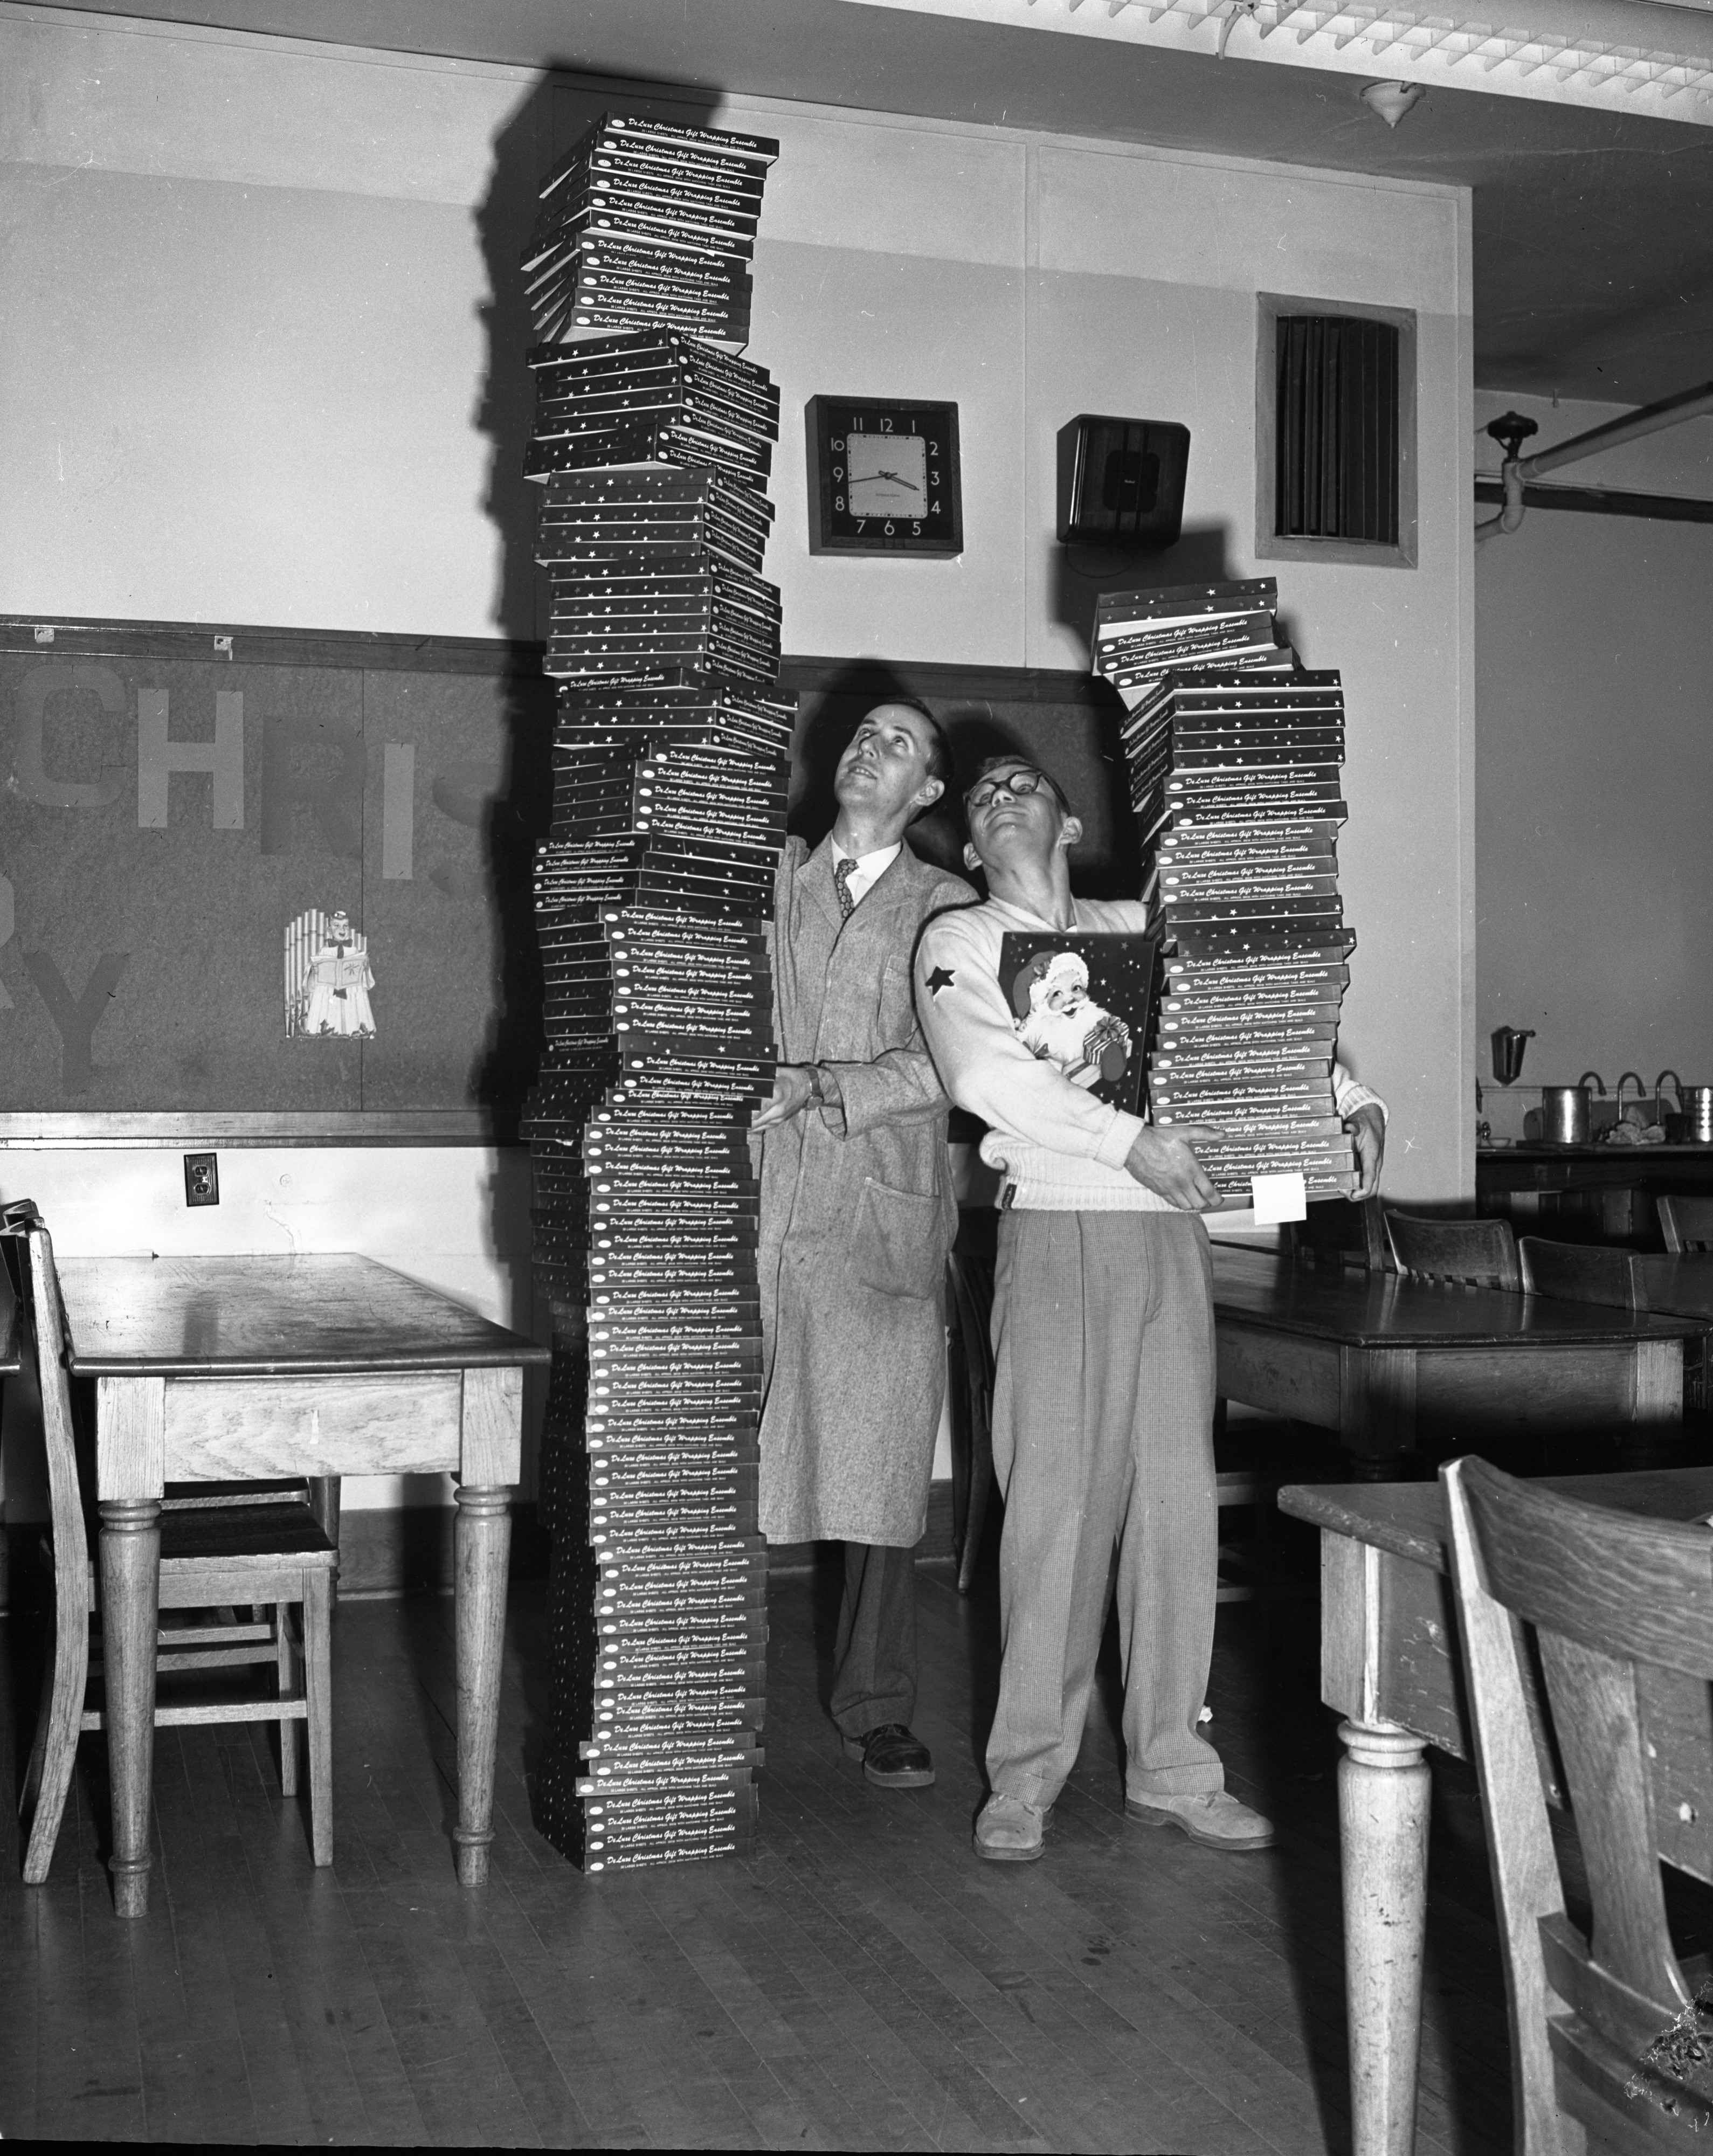 Ann Arbor High School teacher Albert Gallup helps student Chuck O'Hara hold up the 100 boxes of Christmas wrapping to sell, December 1954 image